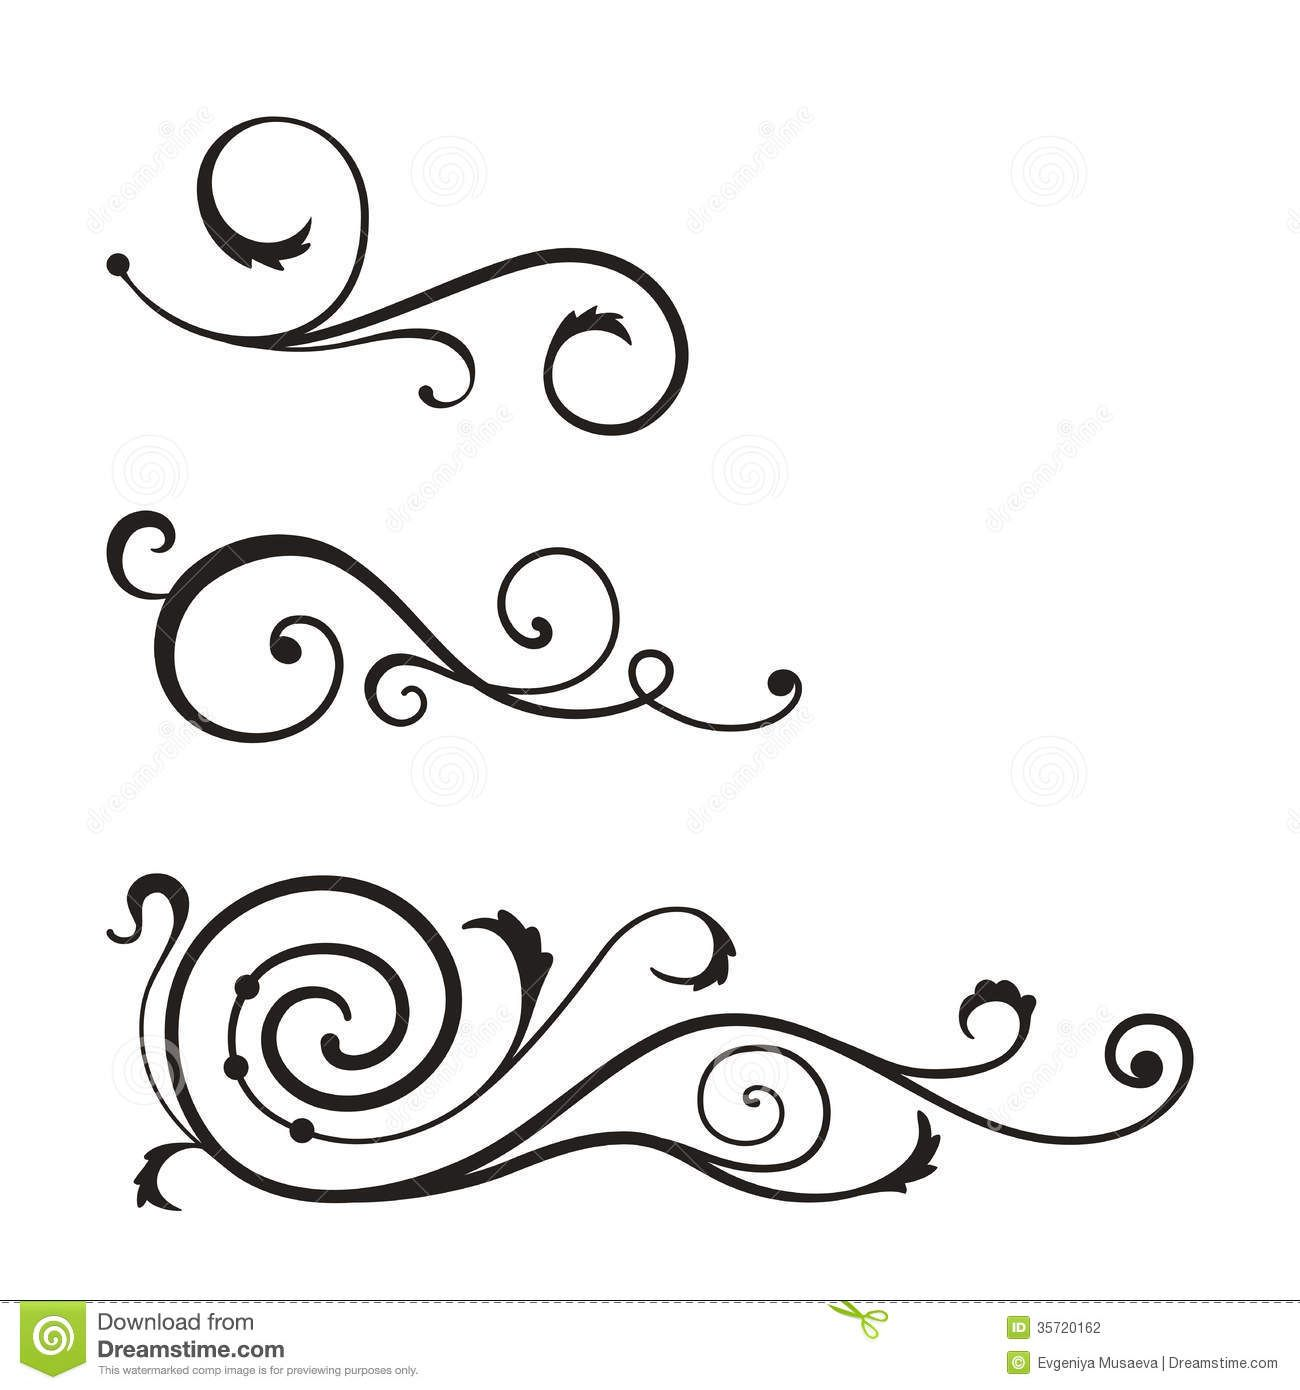 Swirl Line Design Clipart : Swirl elements design vector g